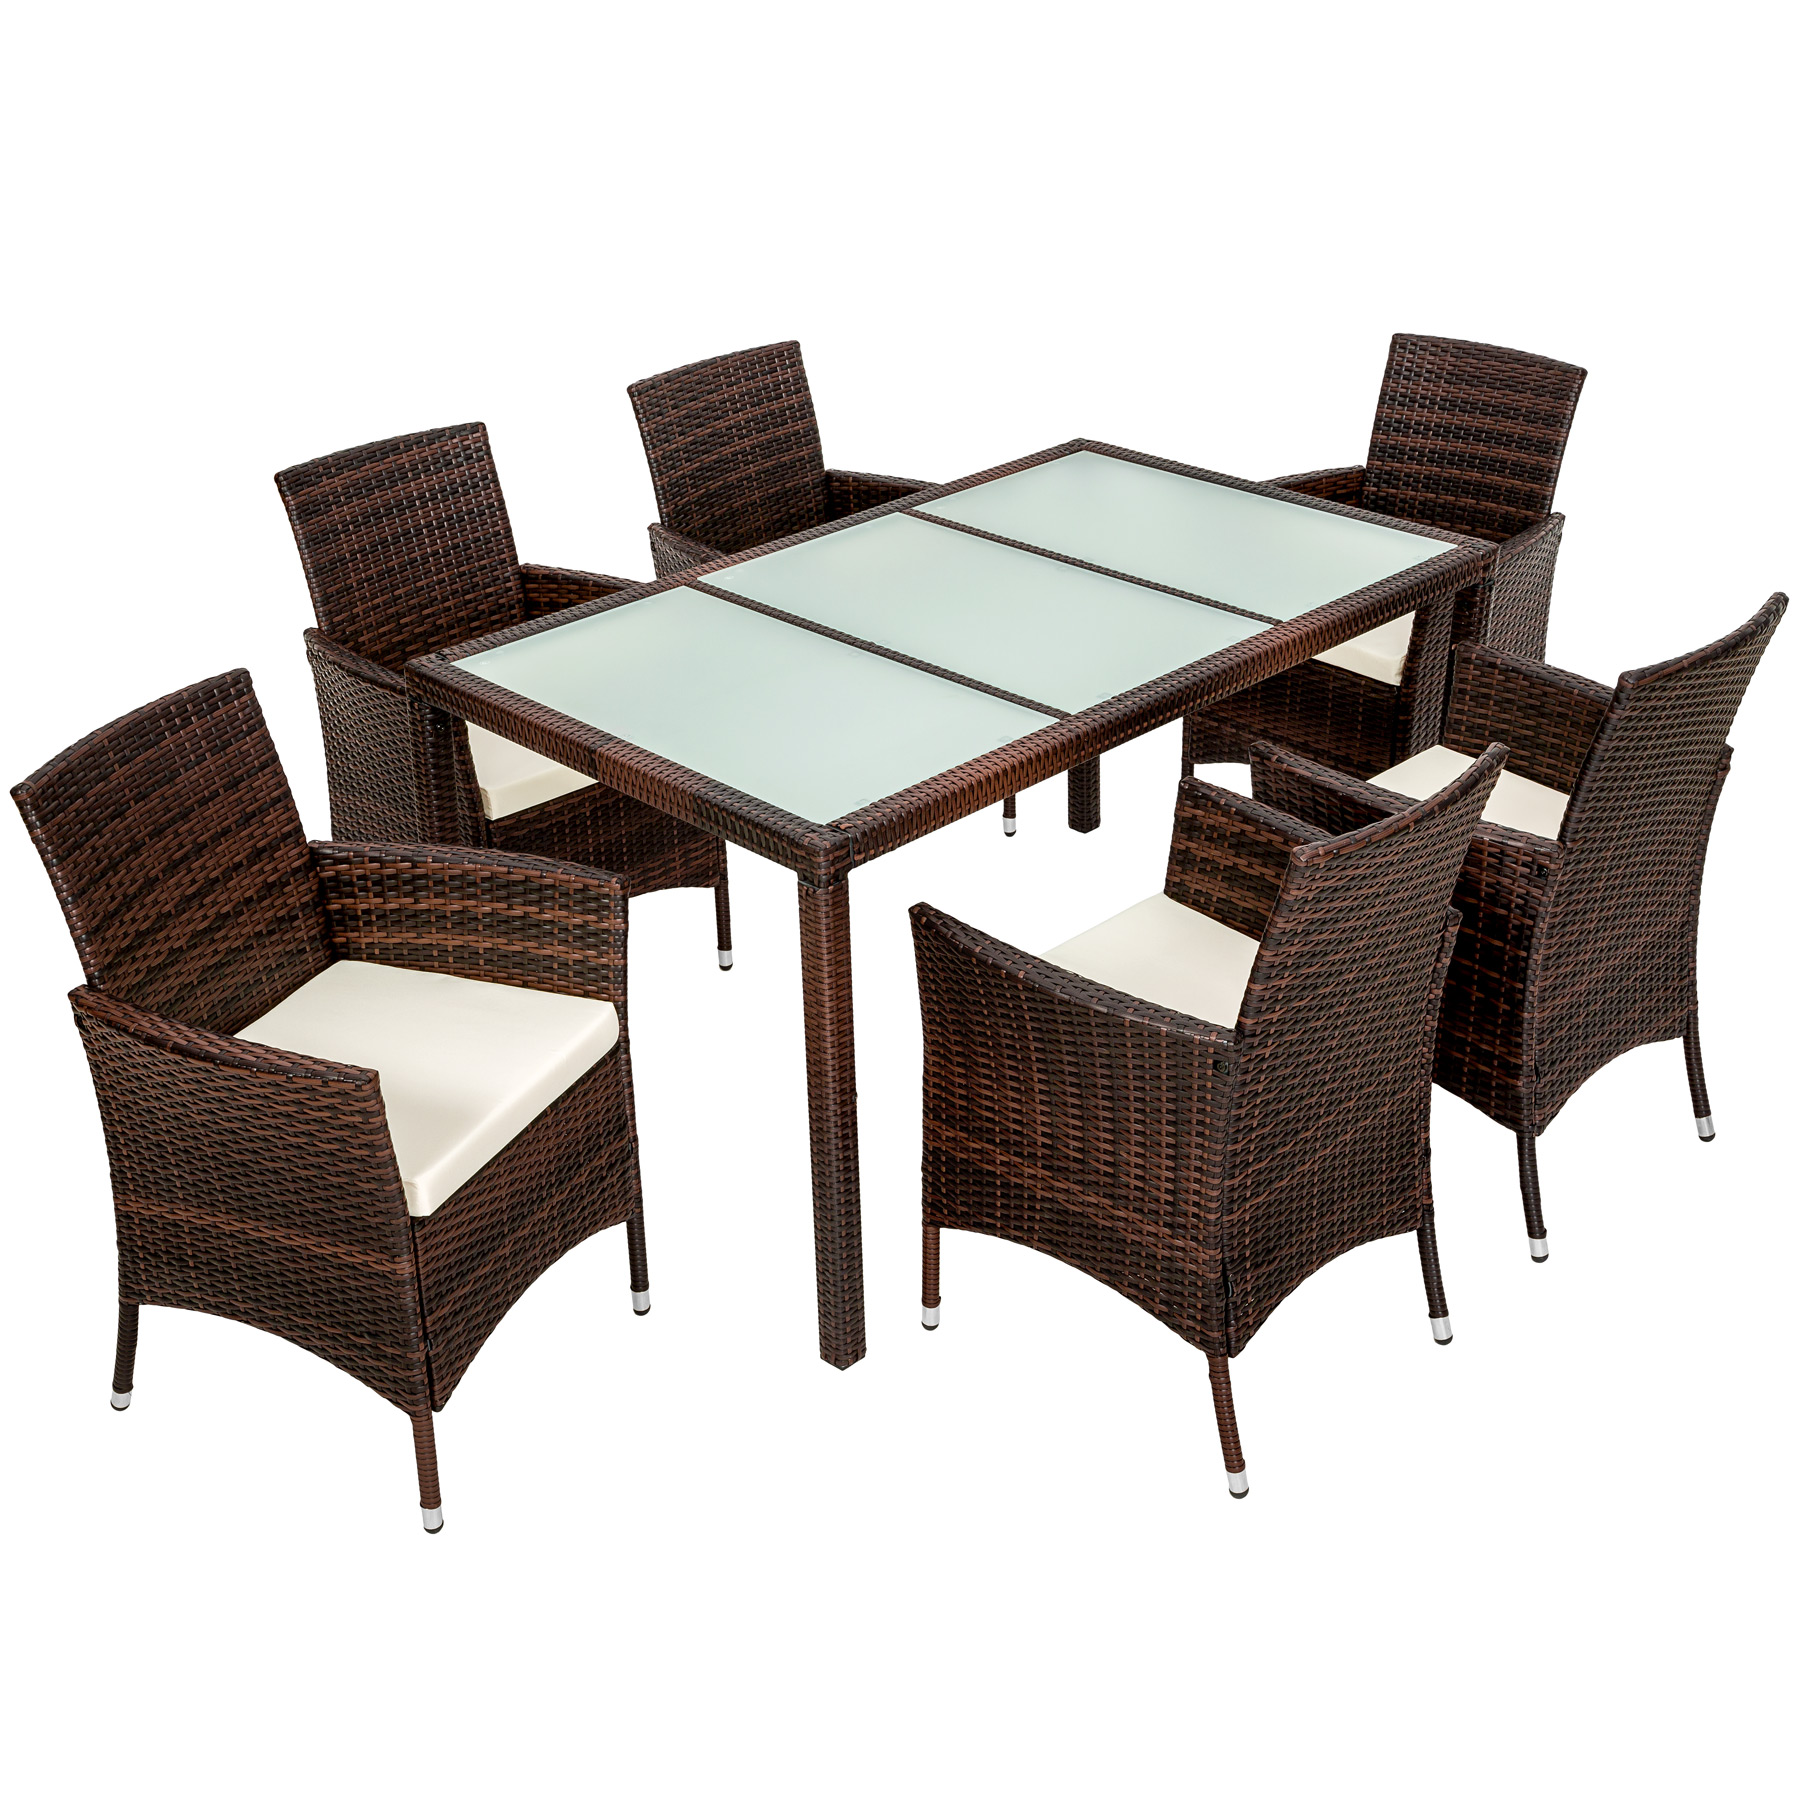 6 Seater Rattan Garden Furniture Dining Set Chairs Table Outdoor Wicker Brown Ebay